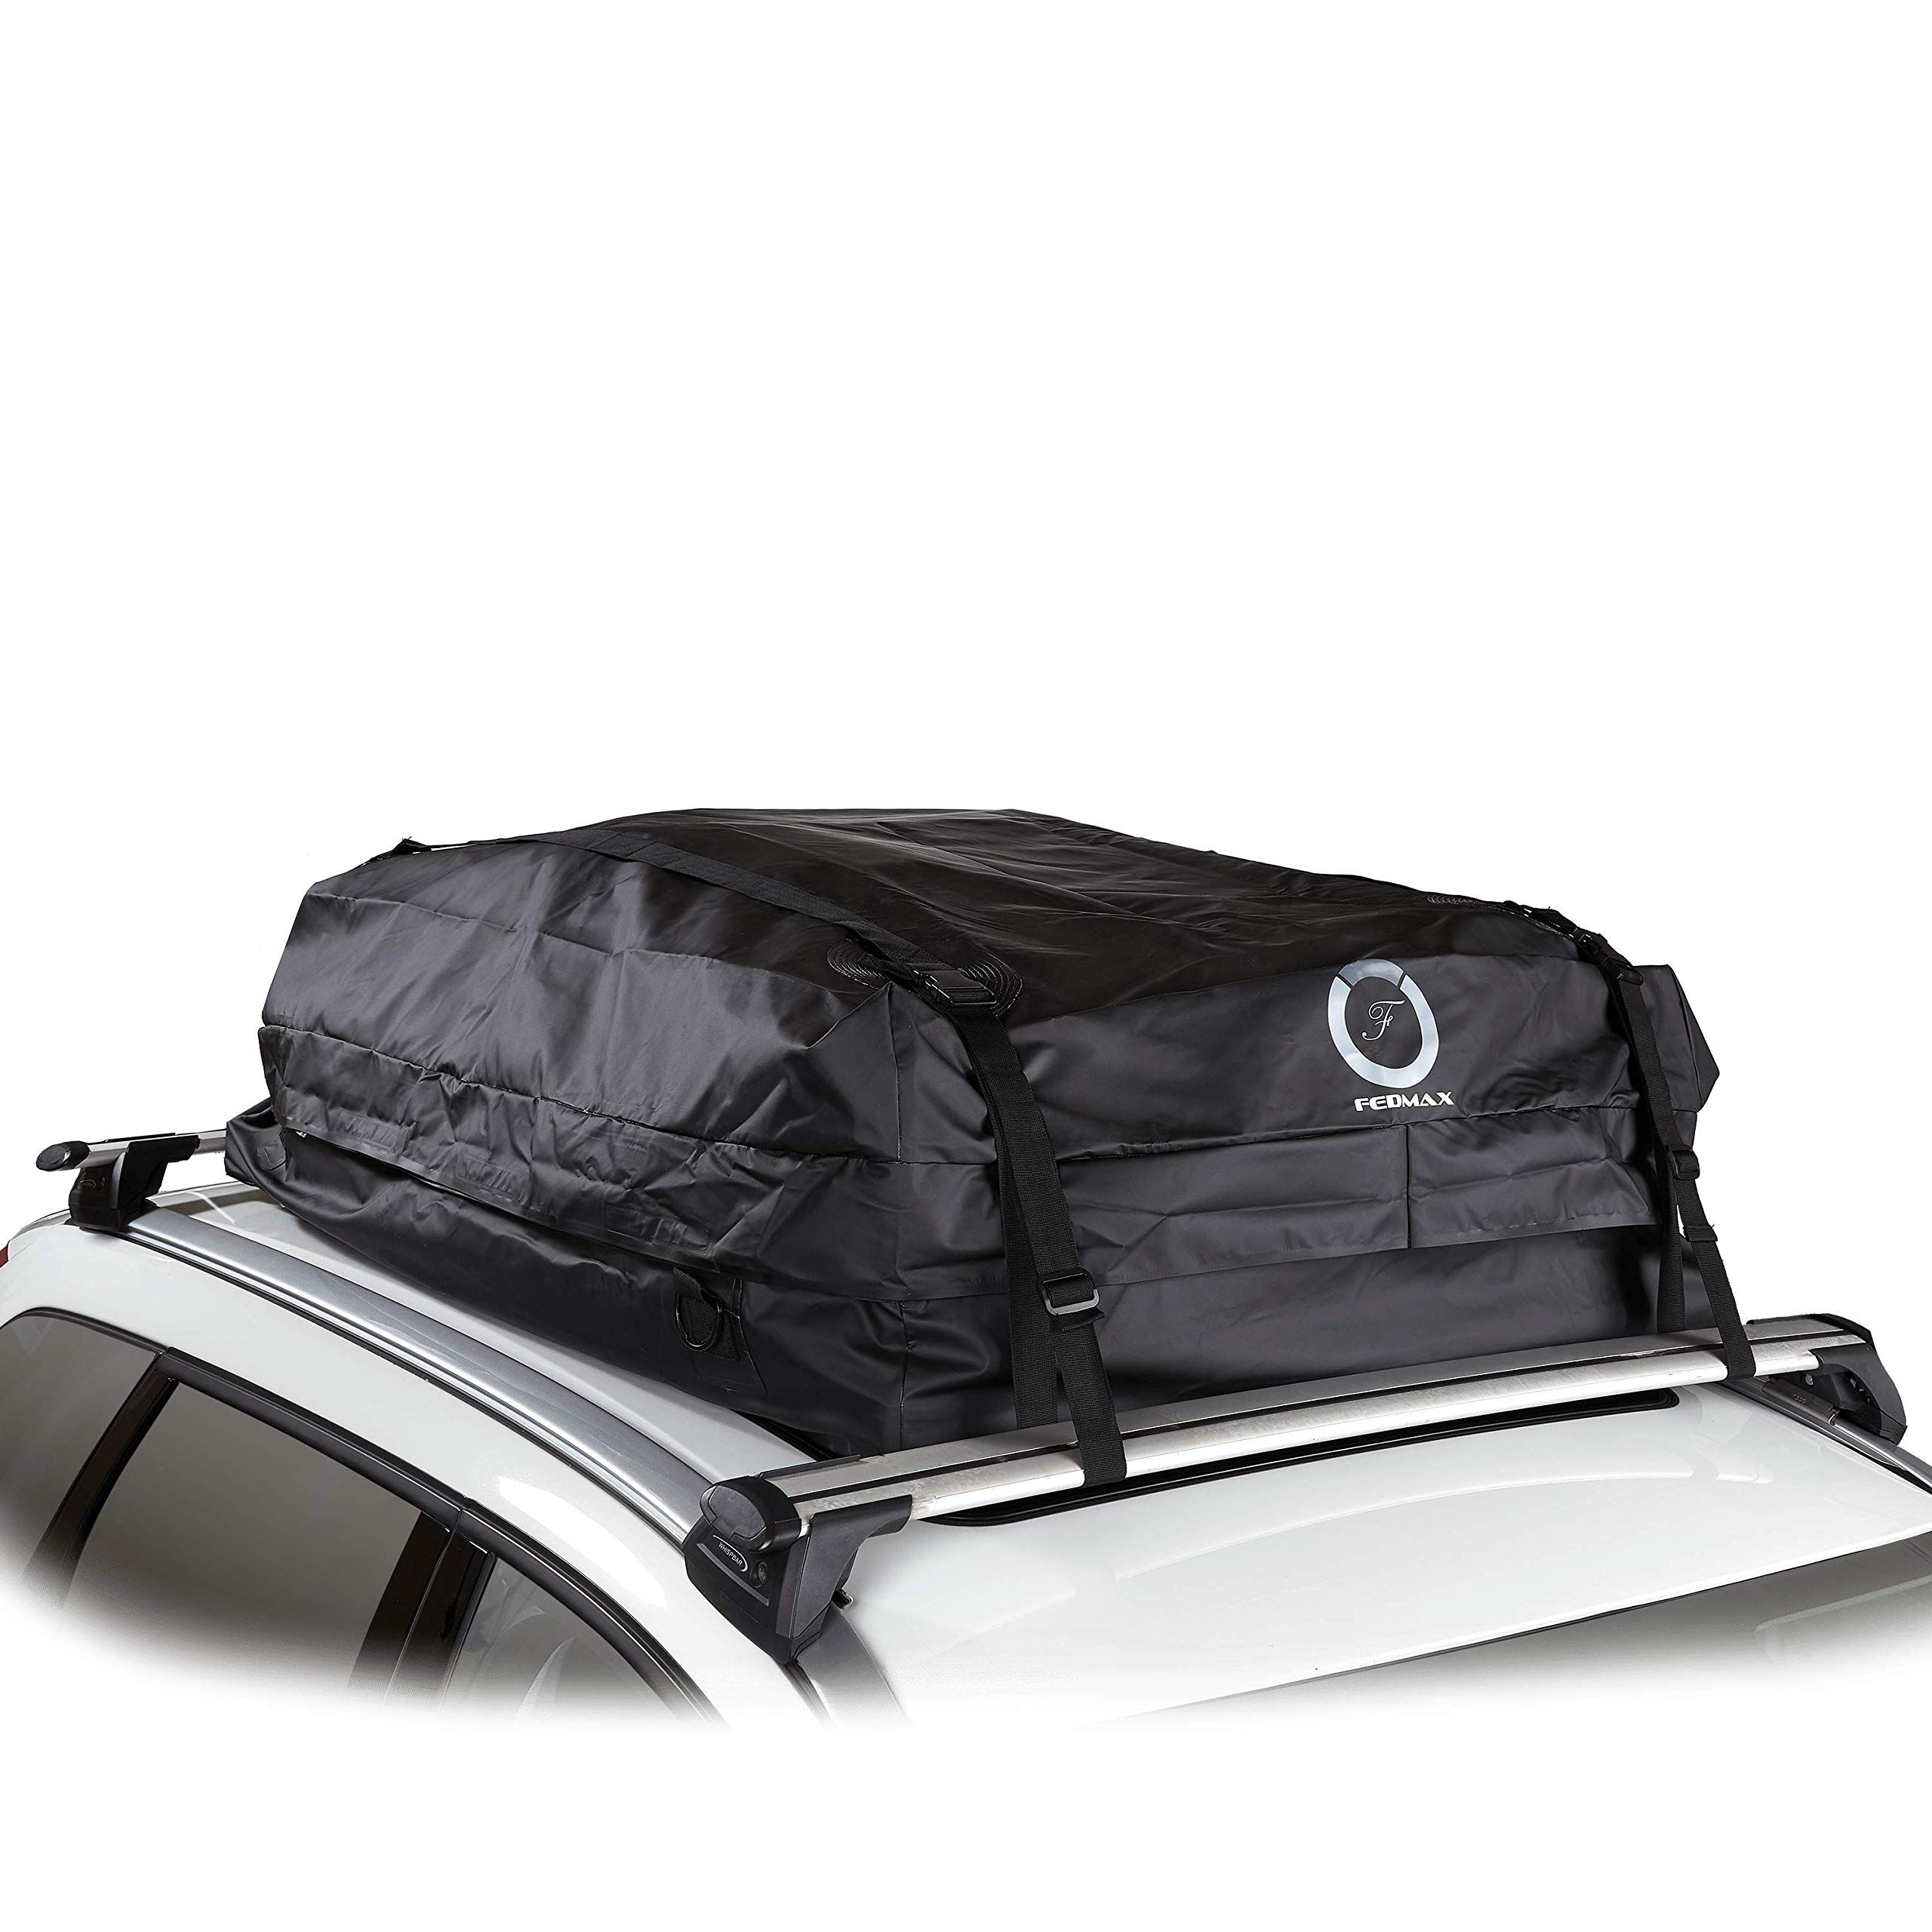 Fedmax Car Rooftop Carrier for Small Cars   Waterproof   Lock Included   Roof Top Luggage Bag (12CFT - Use with Racks) by Fedmax